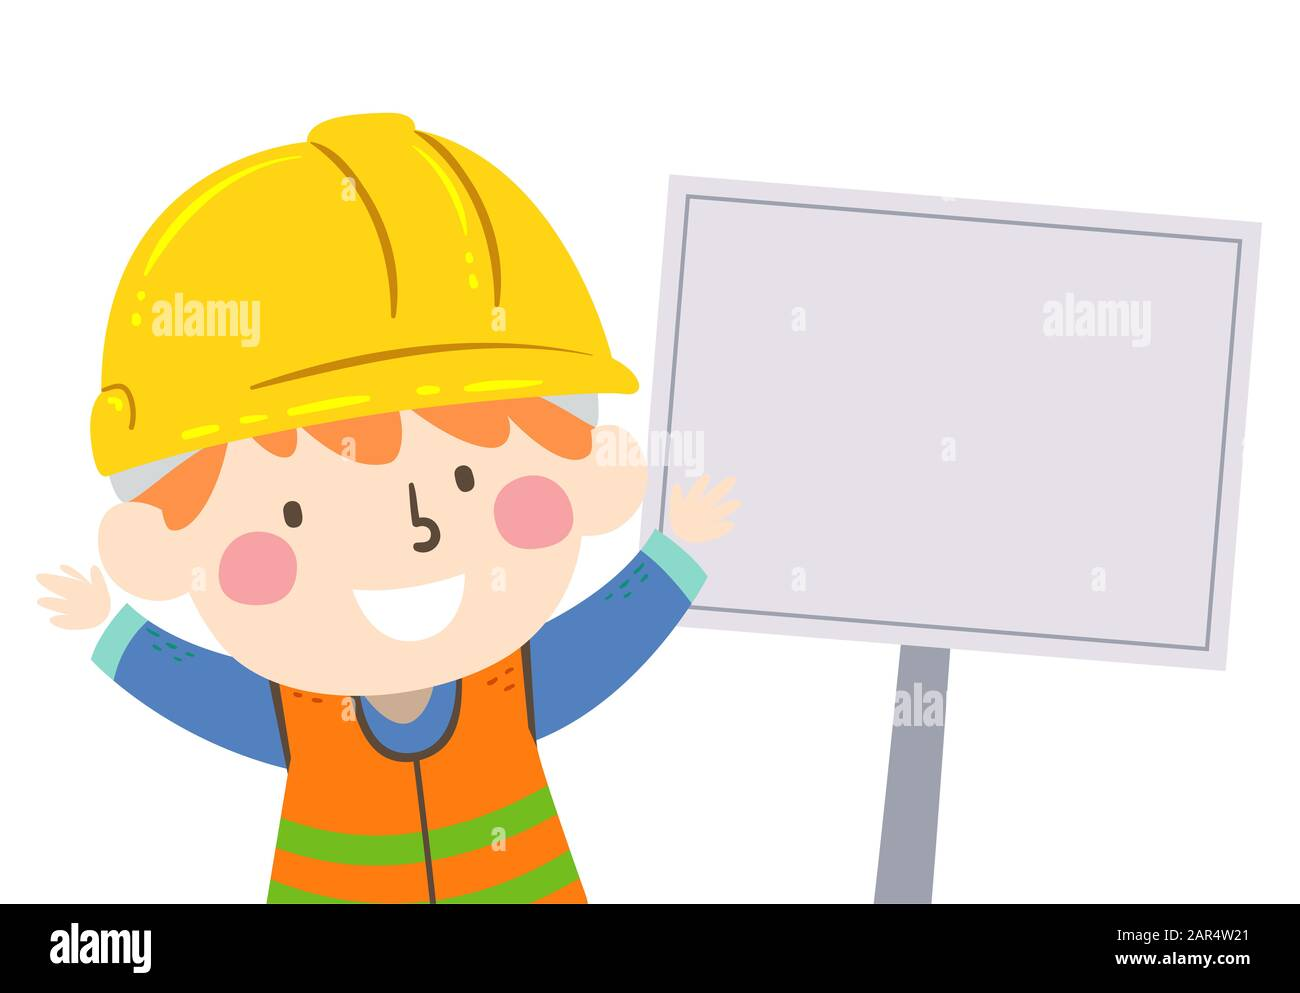 Illustration Of A Kid Boy Construction Engineer Wearing Yellow Hard Hat And Reflective Safety Vest With A Blank Sign Board Stock Photo Alamy